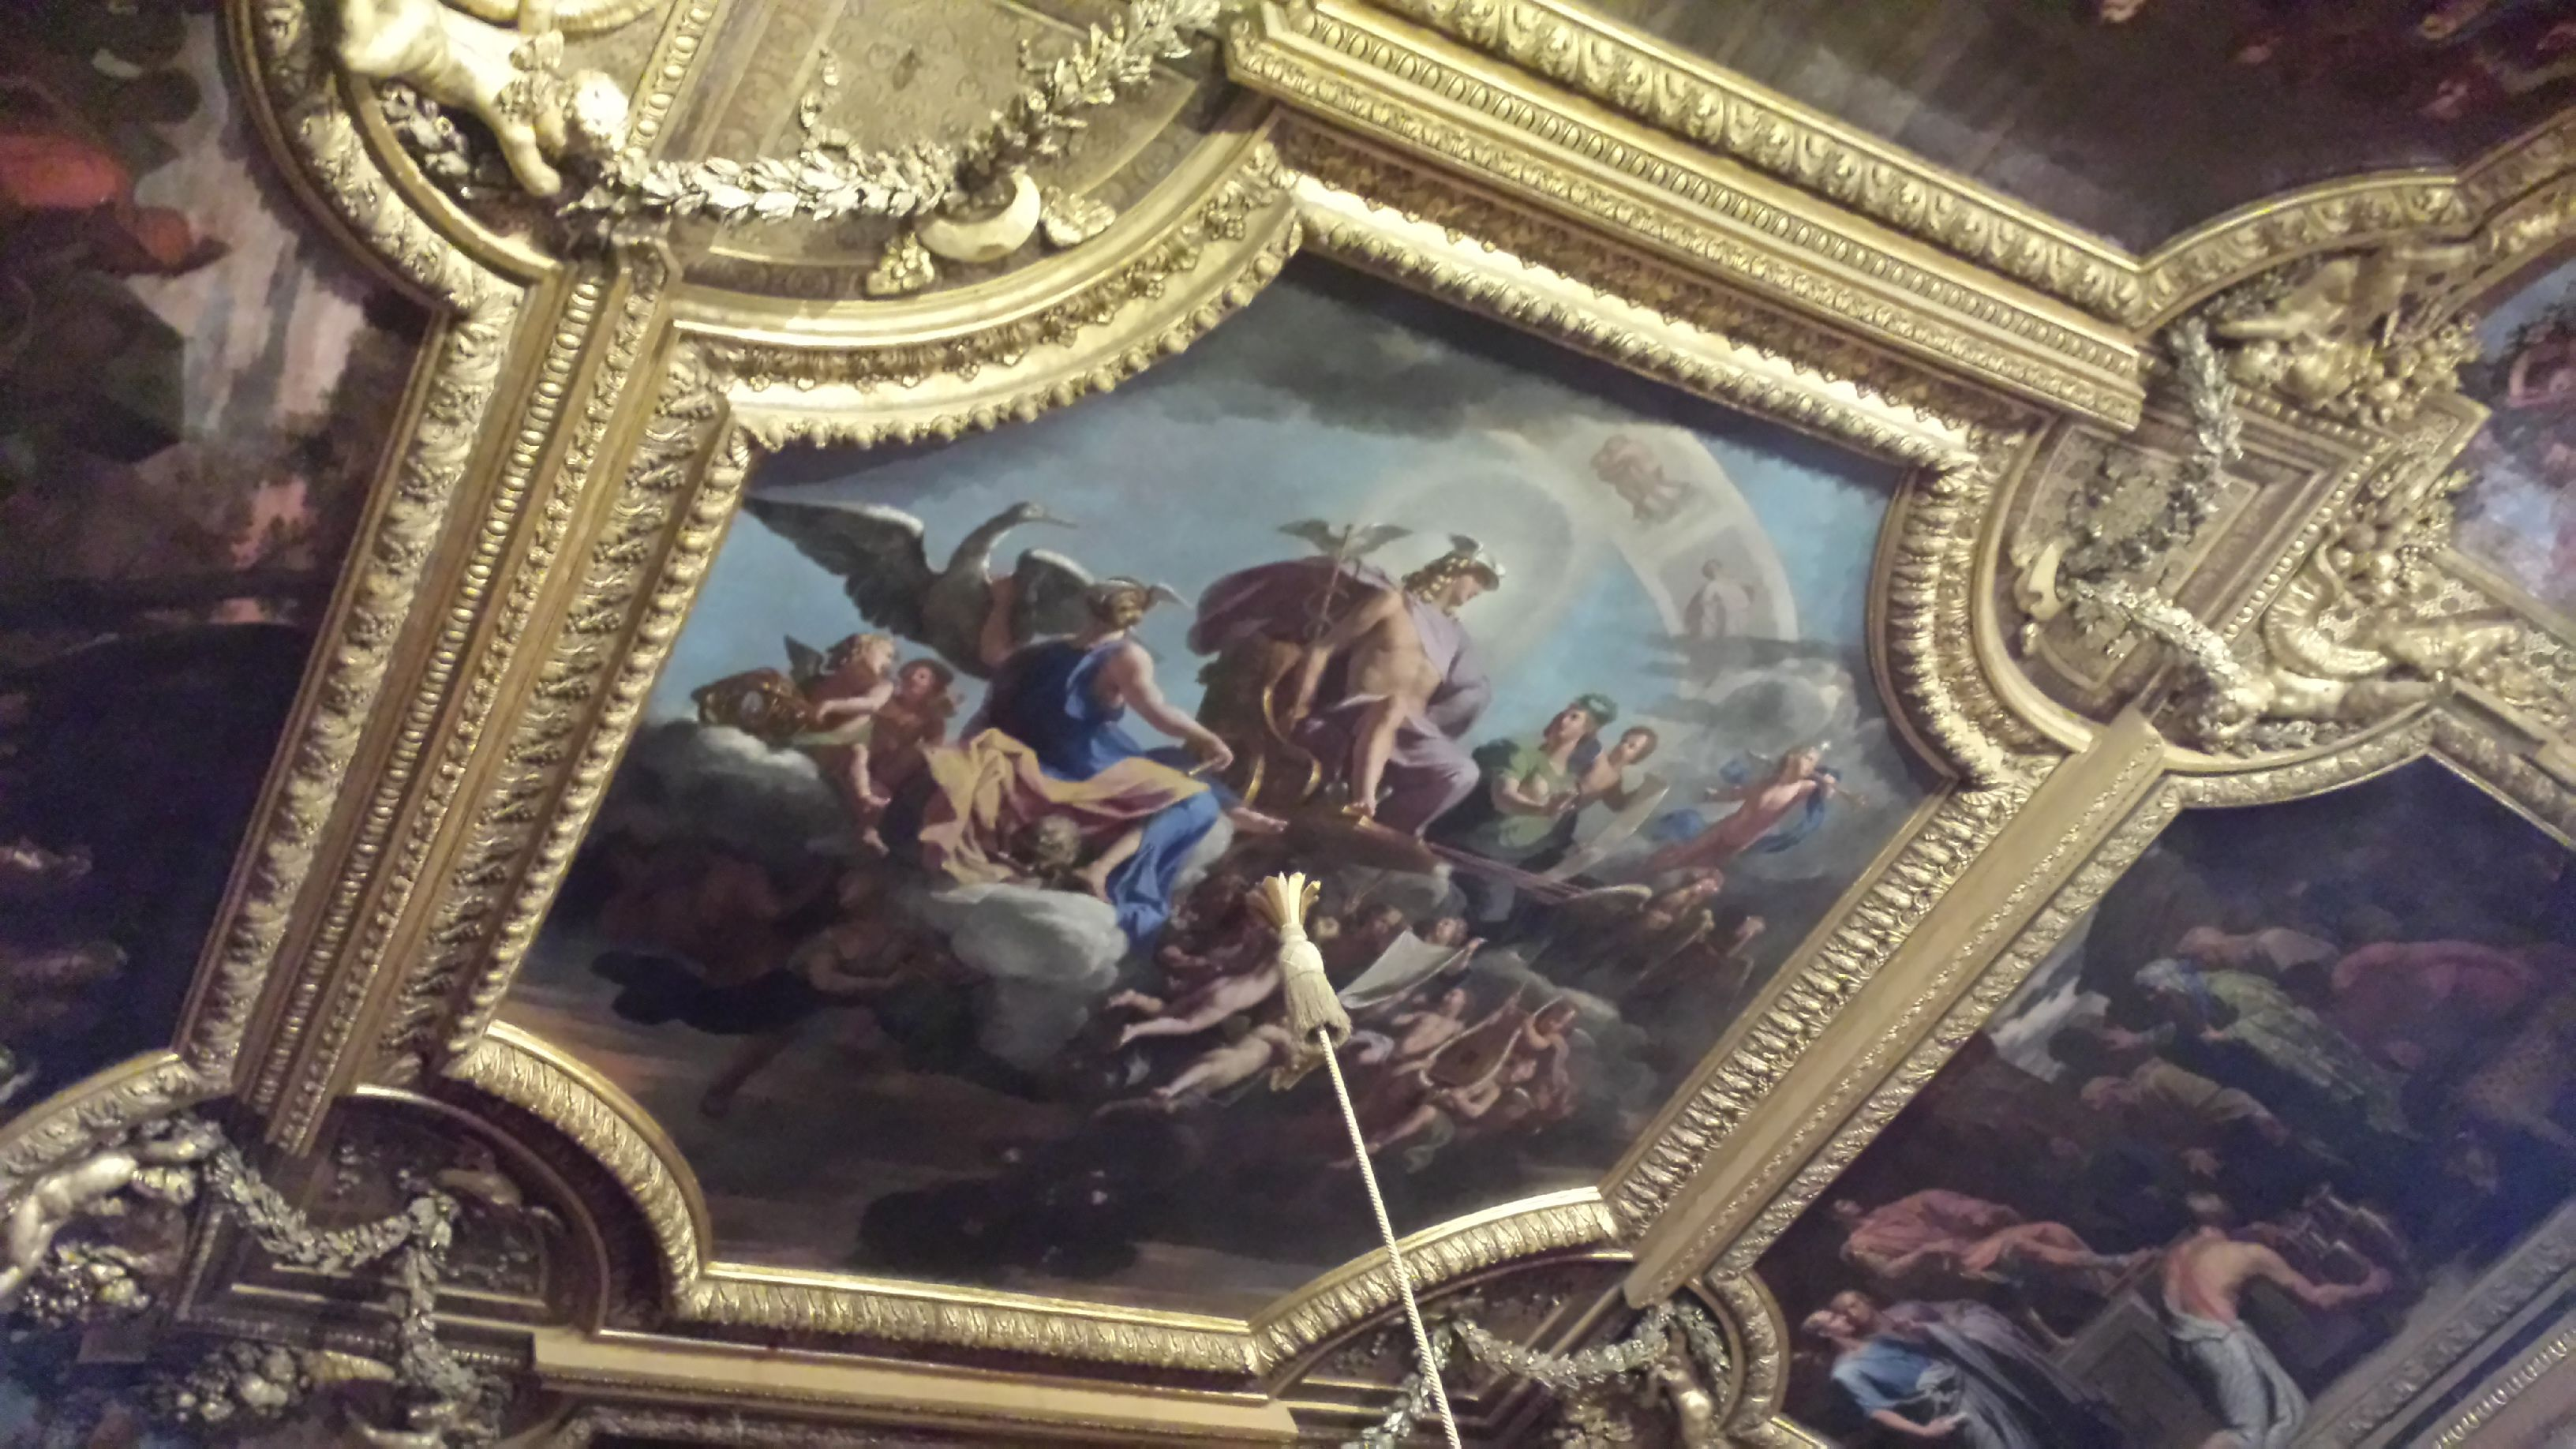 There's a series of rooms with detailed paintings of Greek myths which left me looking up all the time. I think this Apollo one was my favorite